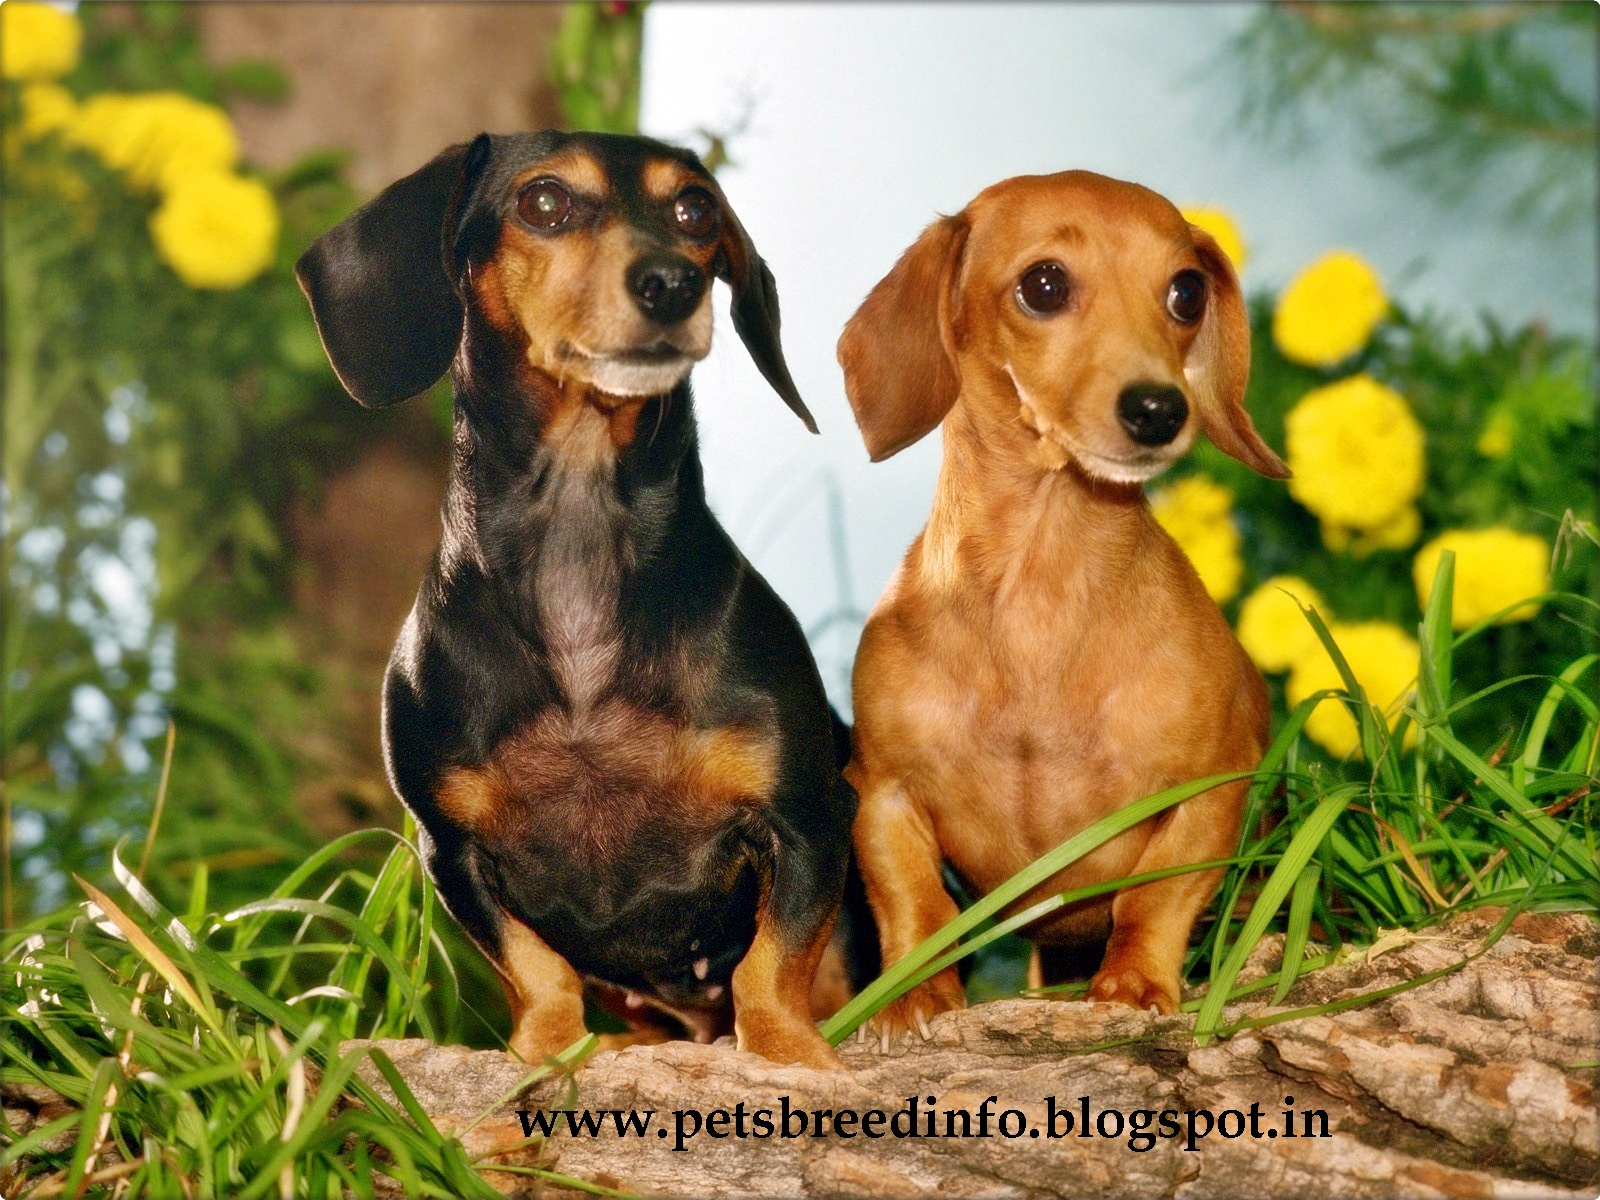 Winter Wallpaper Dachshund Dogs Free dachshund dog hd wallpapers free download dachshund dog images